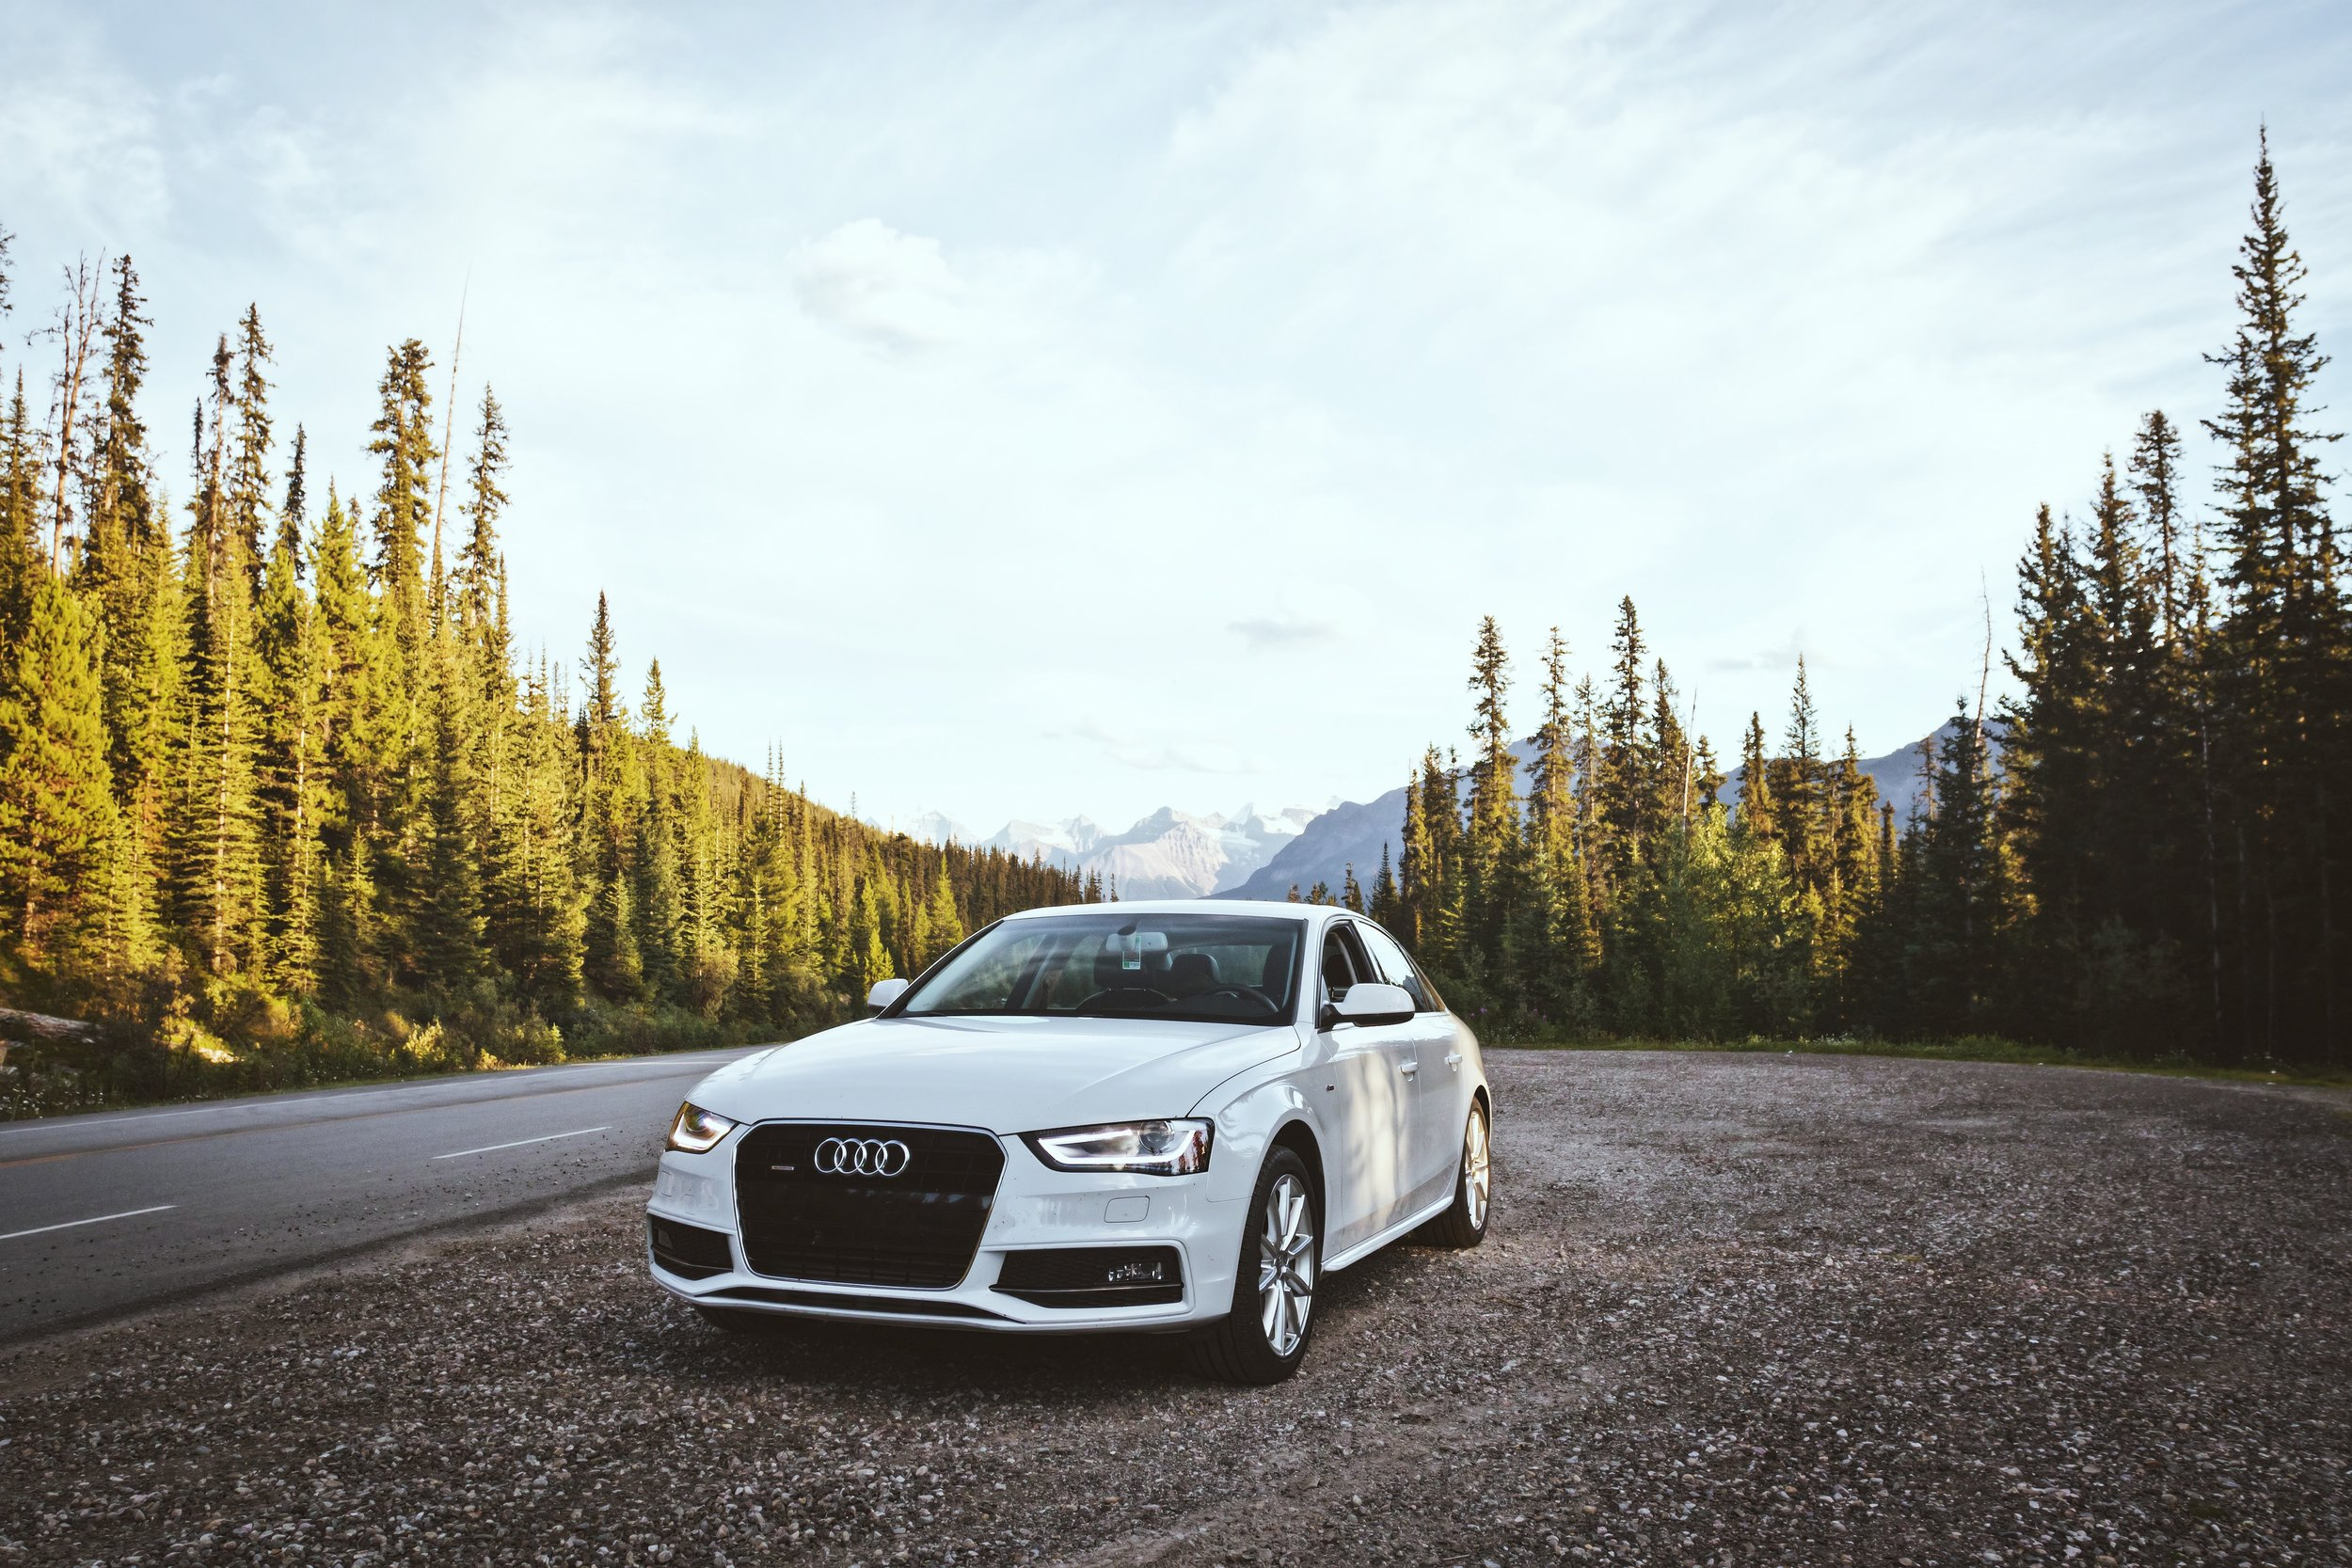 Audi on Icefields Parkway - Banff National Park